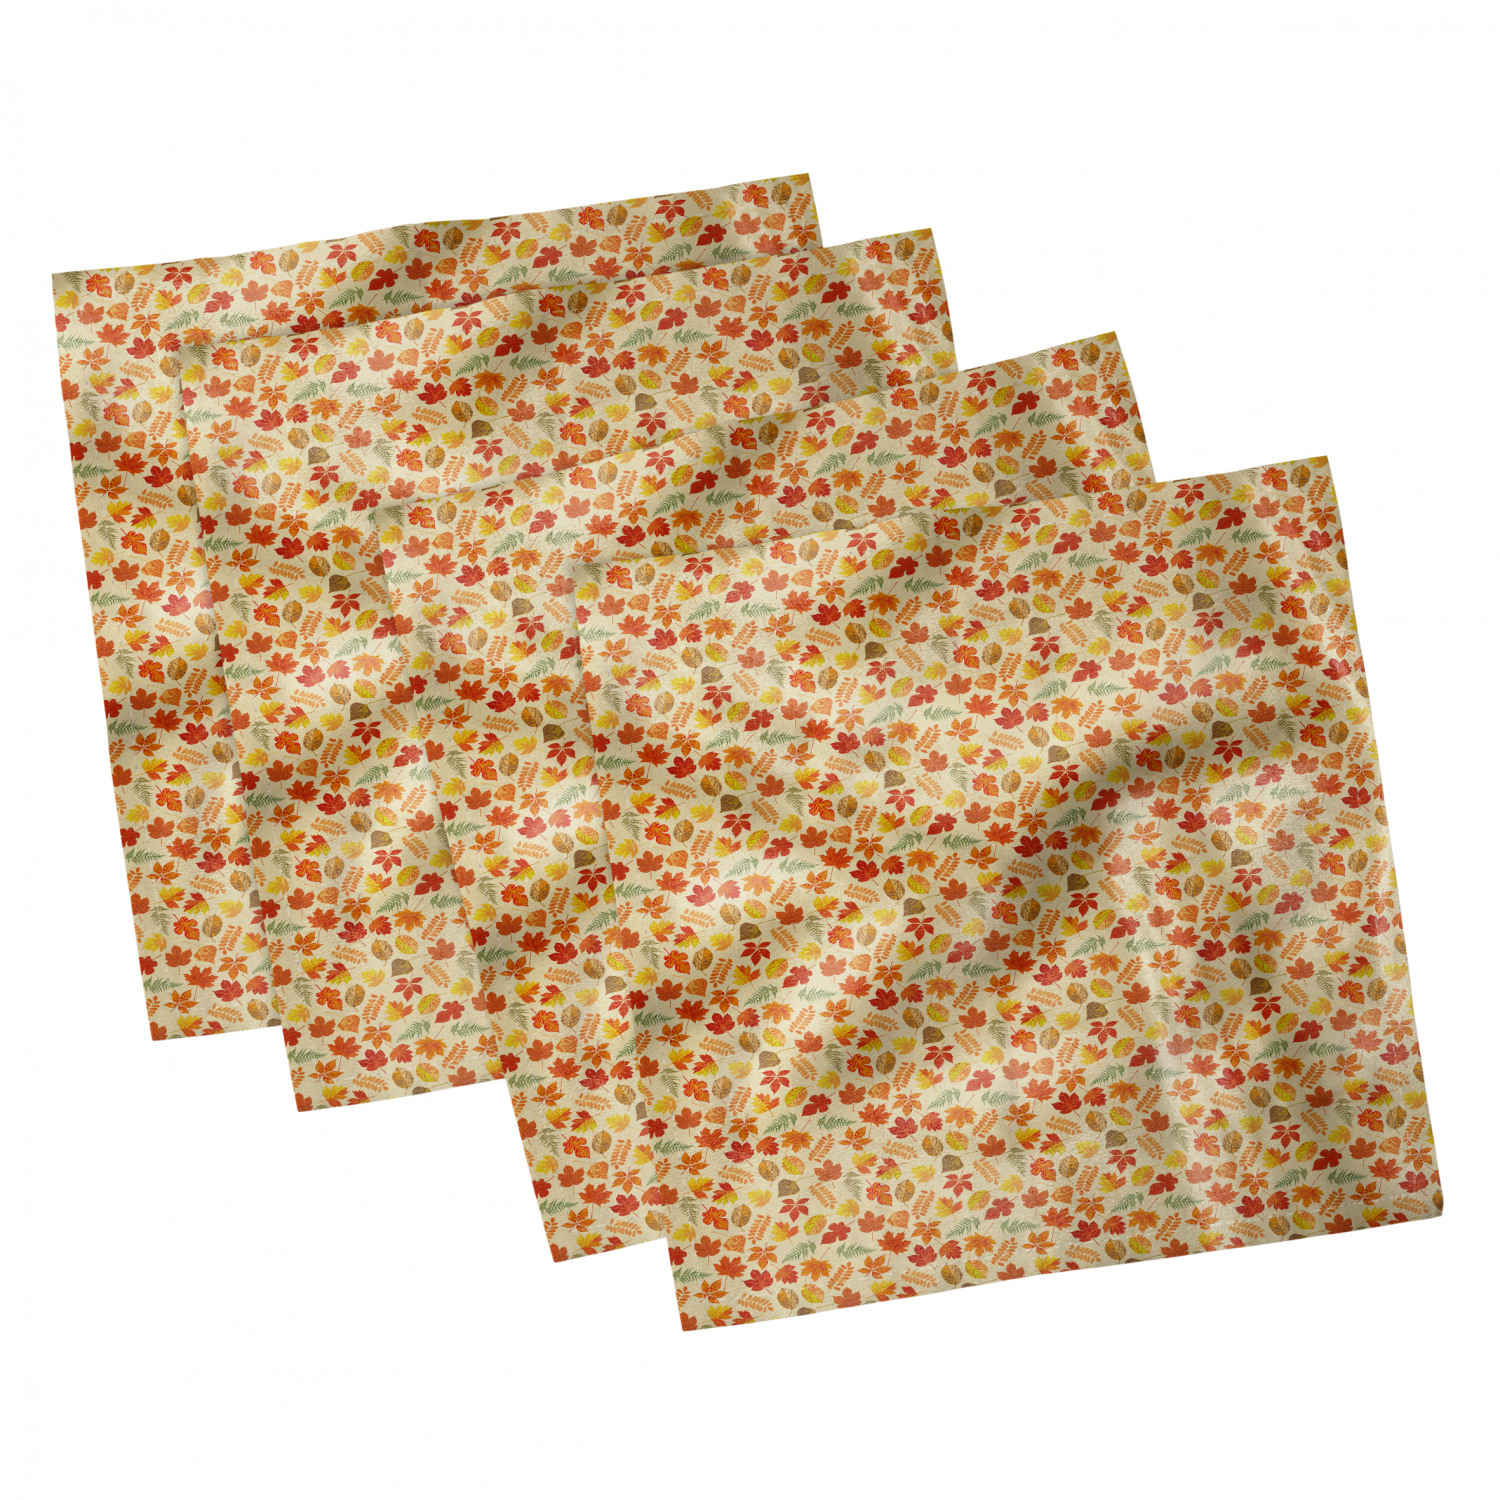 thumbnail 115 - Ambesonne-Leaves-Forest-Decorative-Satin-Napkins-Set-of-4-Party-Dinner-Fabric